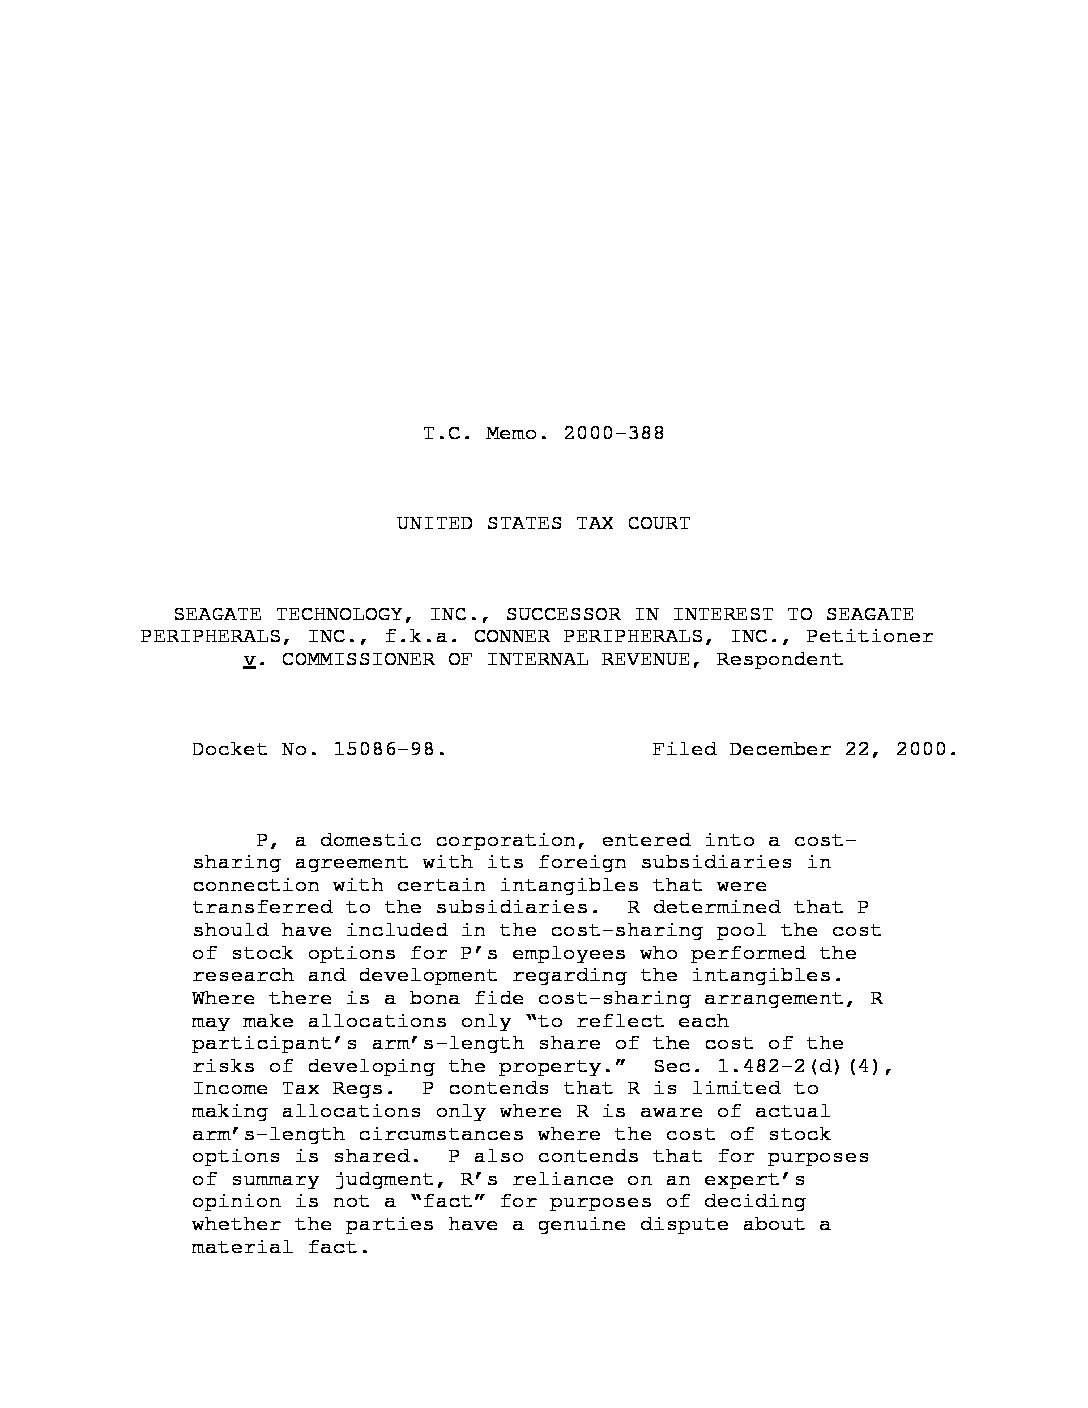 Cost Sharing Agreement Transfer Pricing Case Law At Page 2 Of 2